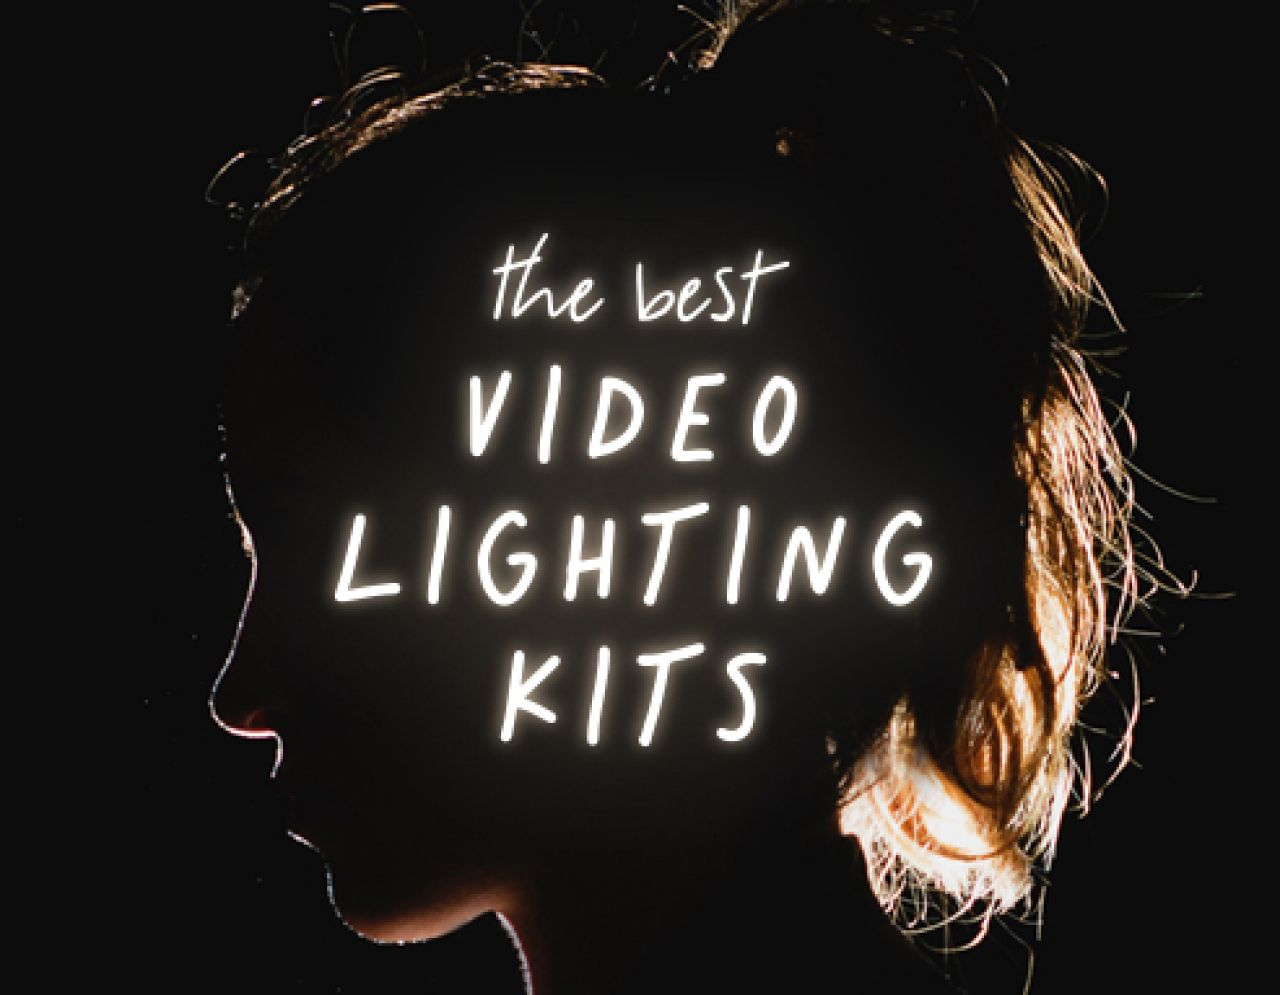 The Best Video Lighting Kits To Make Your Videos Look Pro Biteable